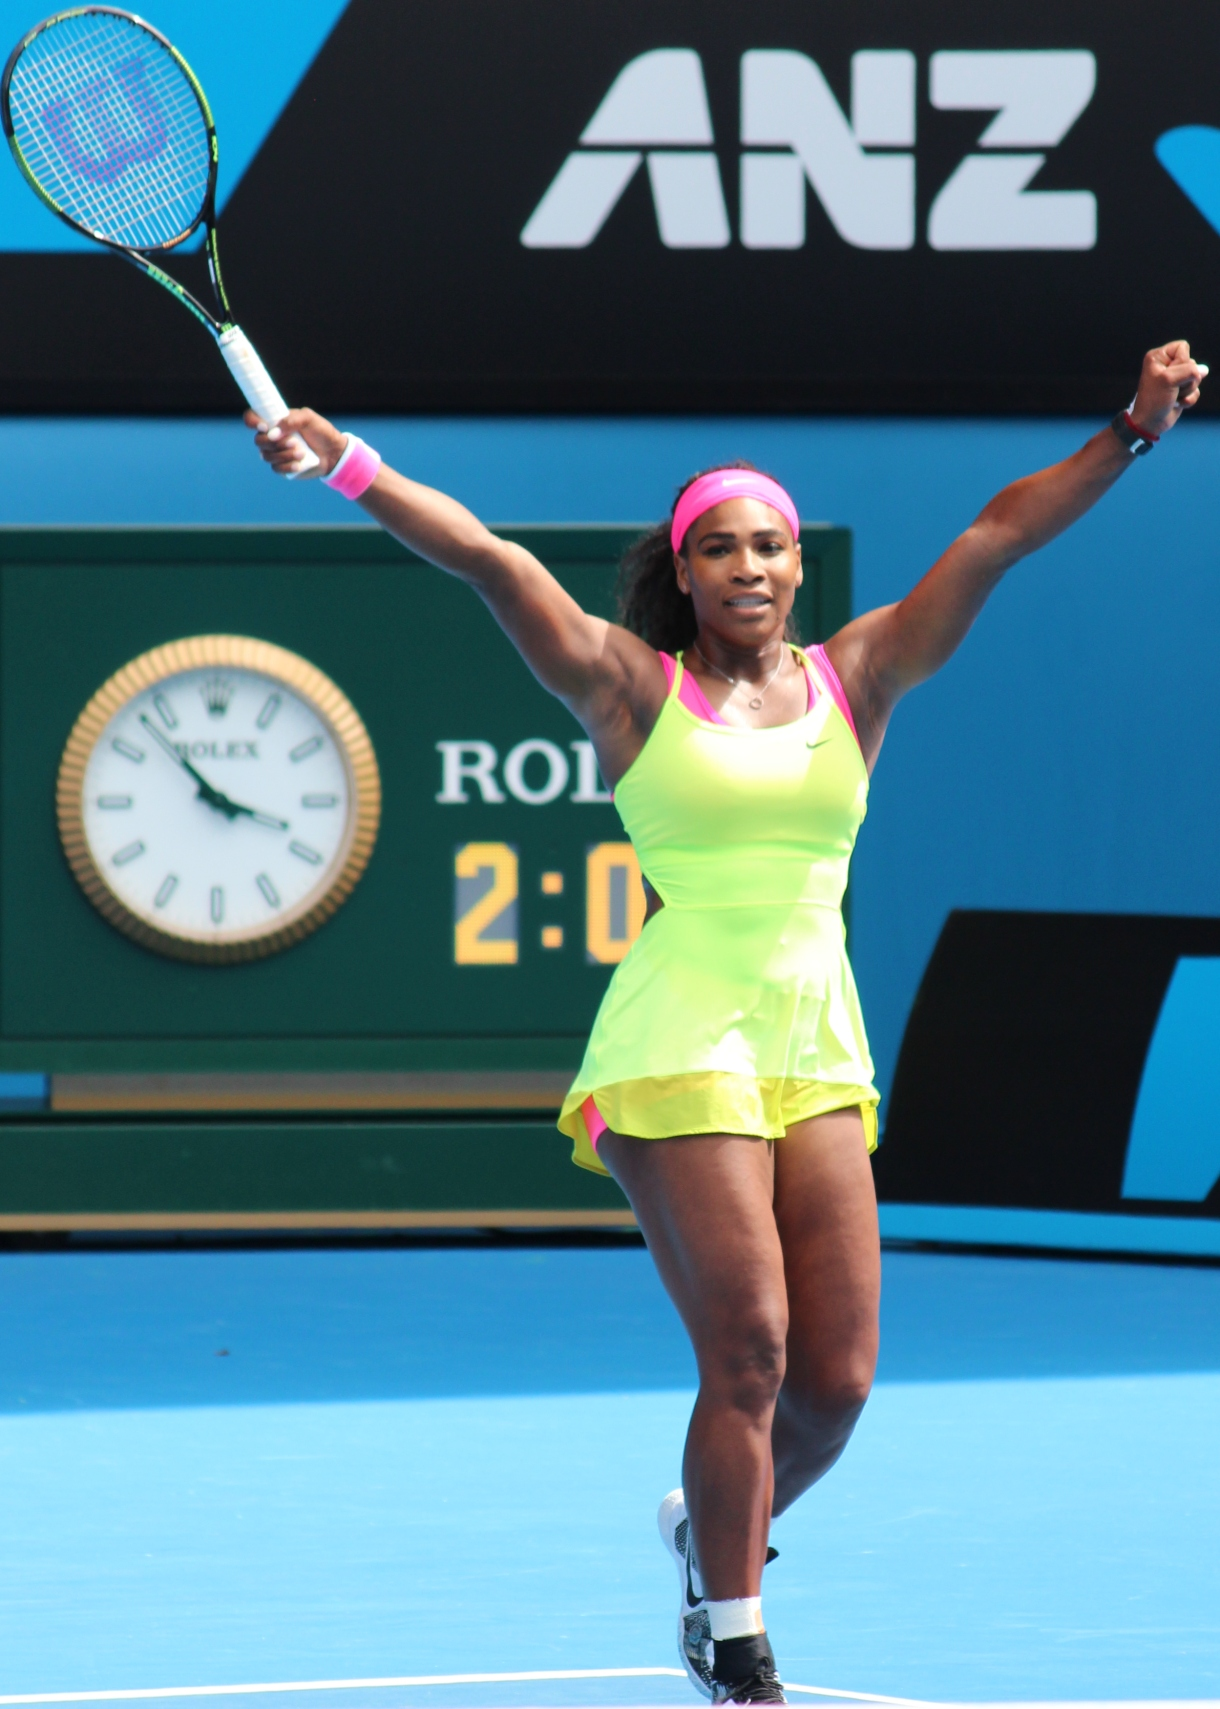 Serena Williams, the greatest athlete of all time, with both arms raised in victory